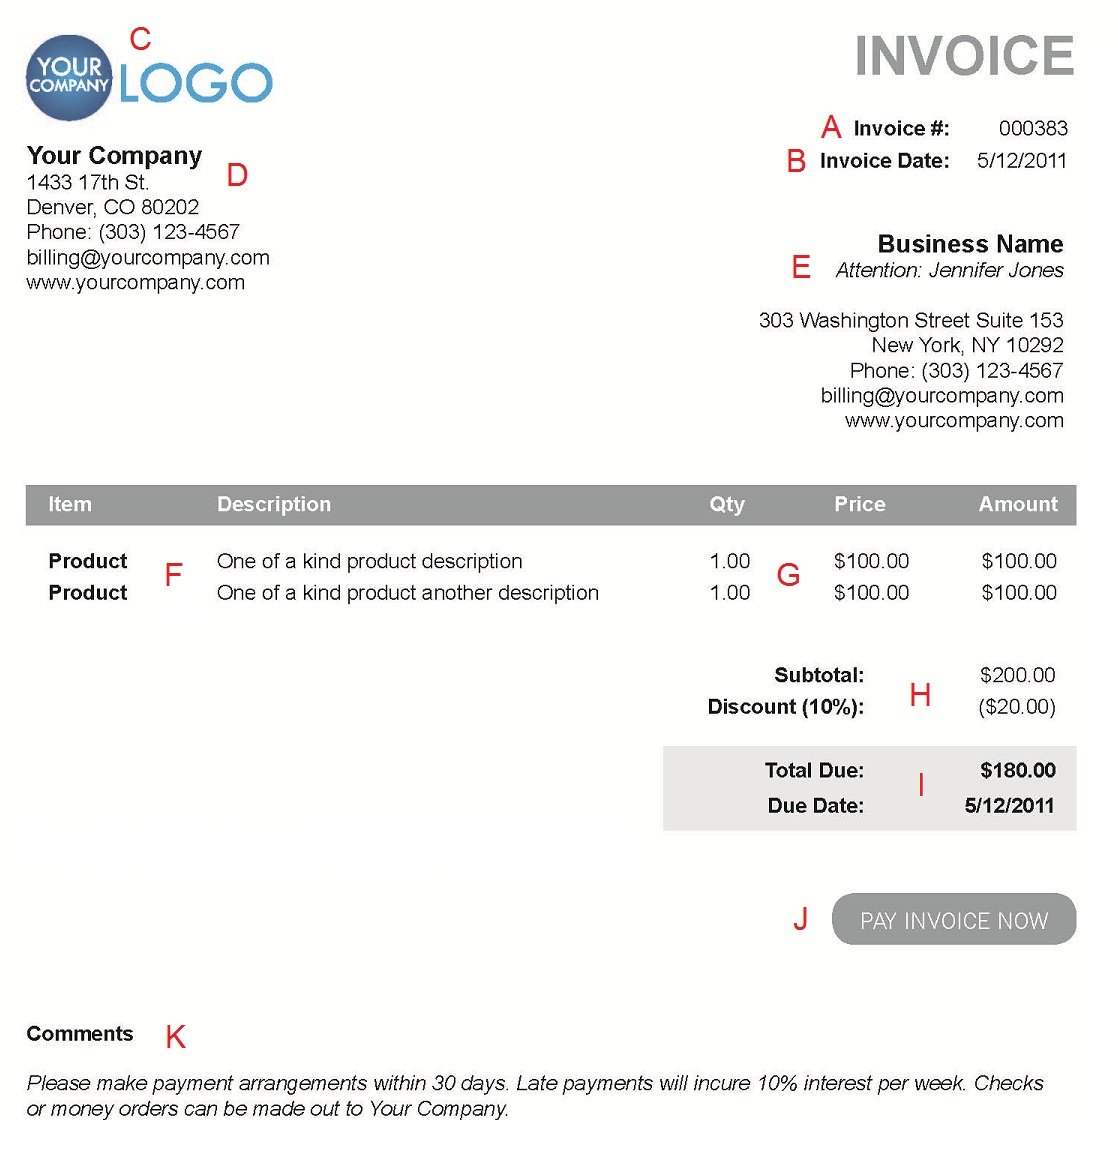 Garygrubbsus  Gorgeous The  Different Sections Of An Electronic Payment Invoice With Entrancing A  With Charming Invoicing Definition Also How To Make Invoice In Addition Invoice Factoring Companies And Online Invoice Template As Well As Harvest Invoice Additionally Blank Commercial Invoice From Paysimplecom With Garygrubbsus  Entrancing The  Different Sections Of An Electronic Payment Invoice With Charming A  And Gorgeous Invoicing Definition Also How To Make Invoice In Addition Invoice Factoring Companies From Paysimplecom